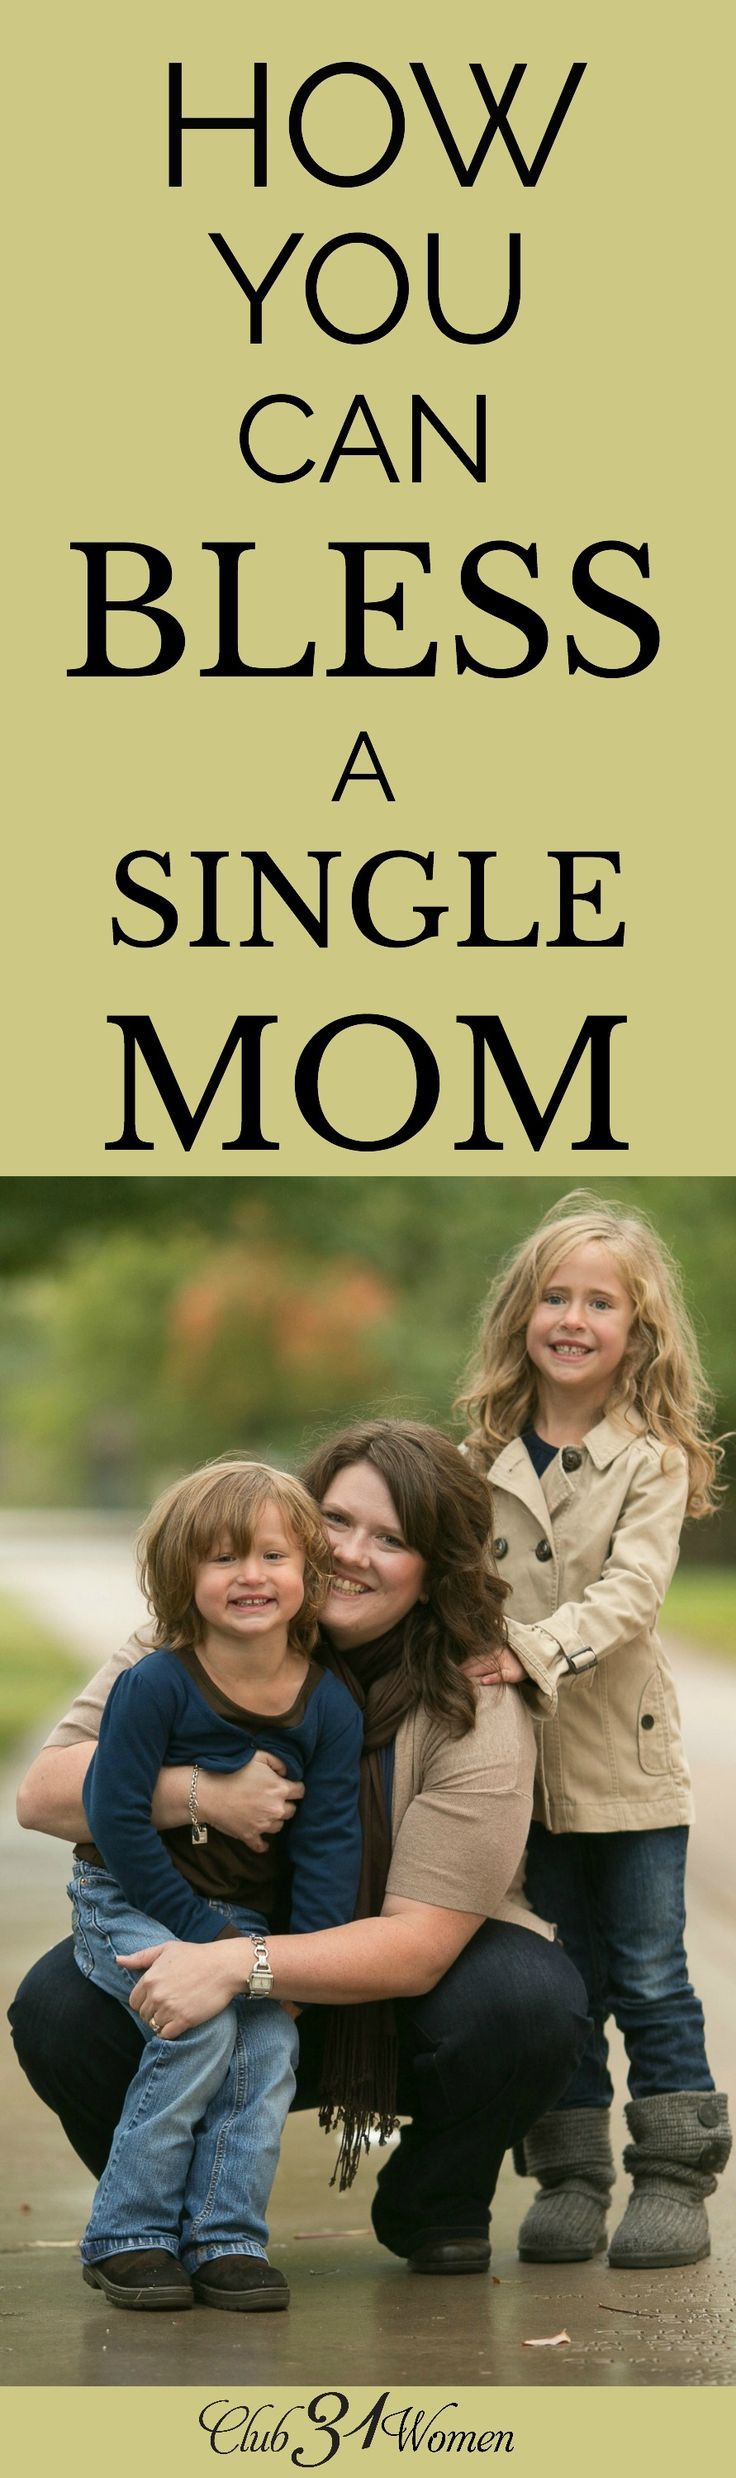 Single moms need the love of their surrounding community in ways we may not fully understand. Here are some wonderful ways to bless a single mom you know! via /Club31Women/